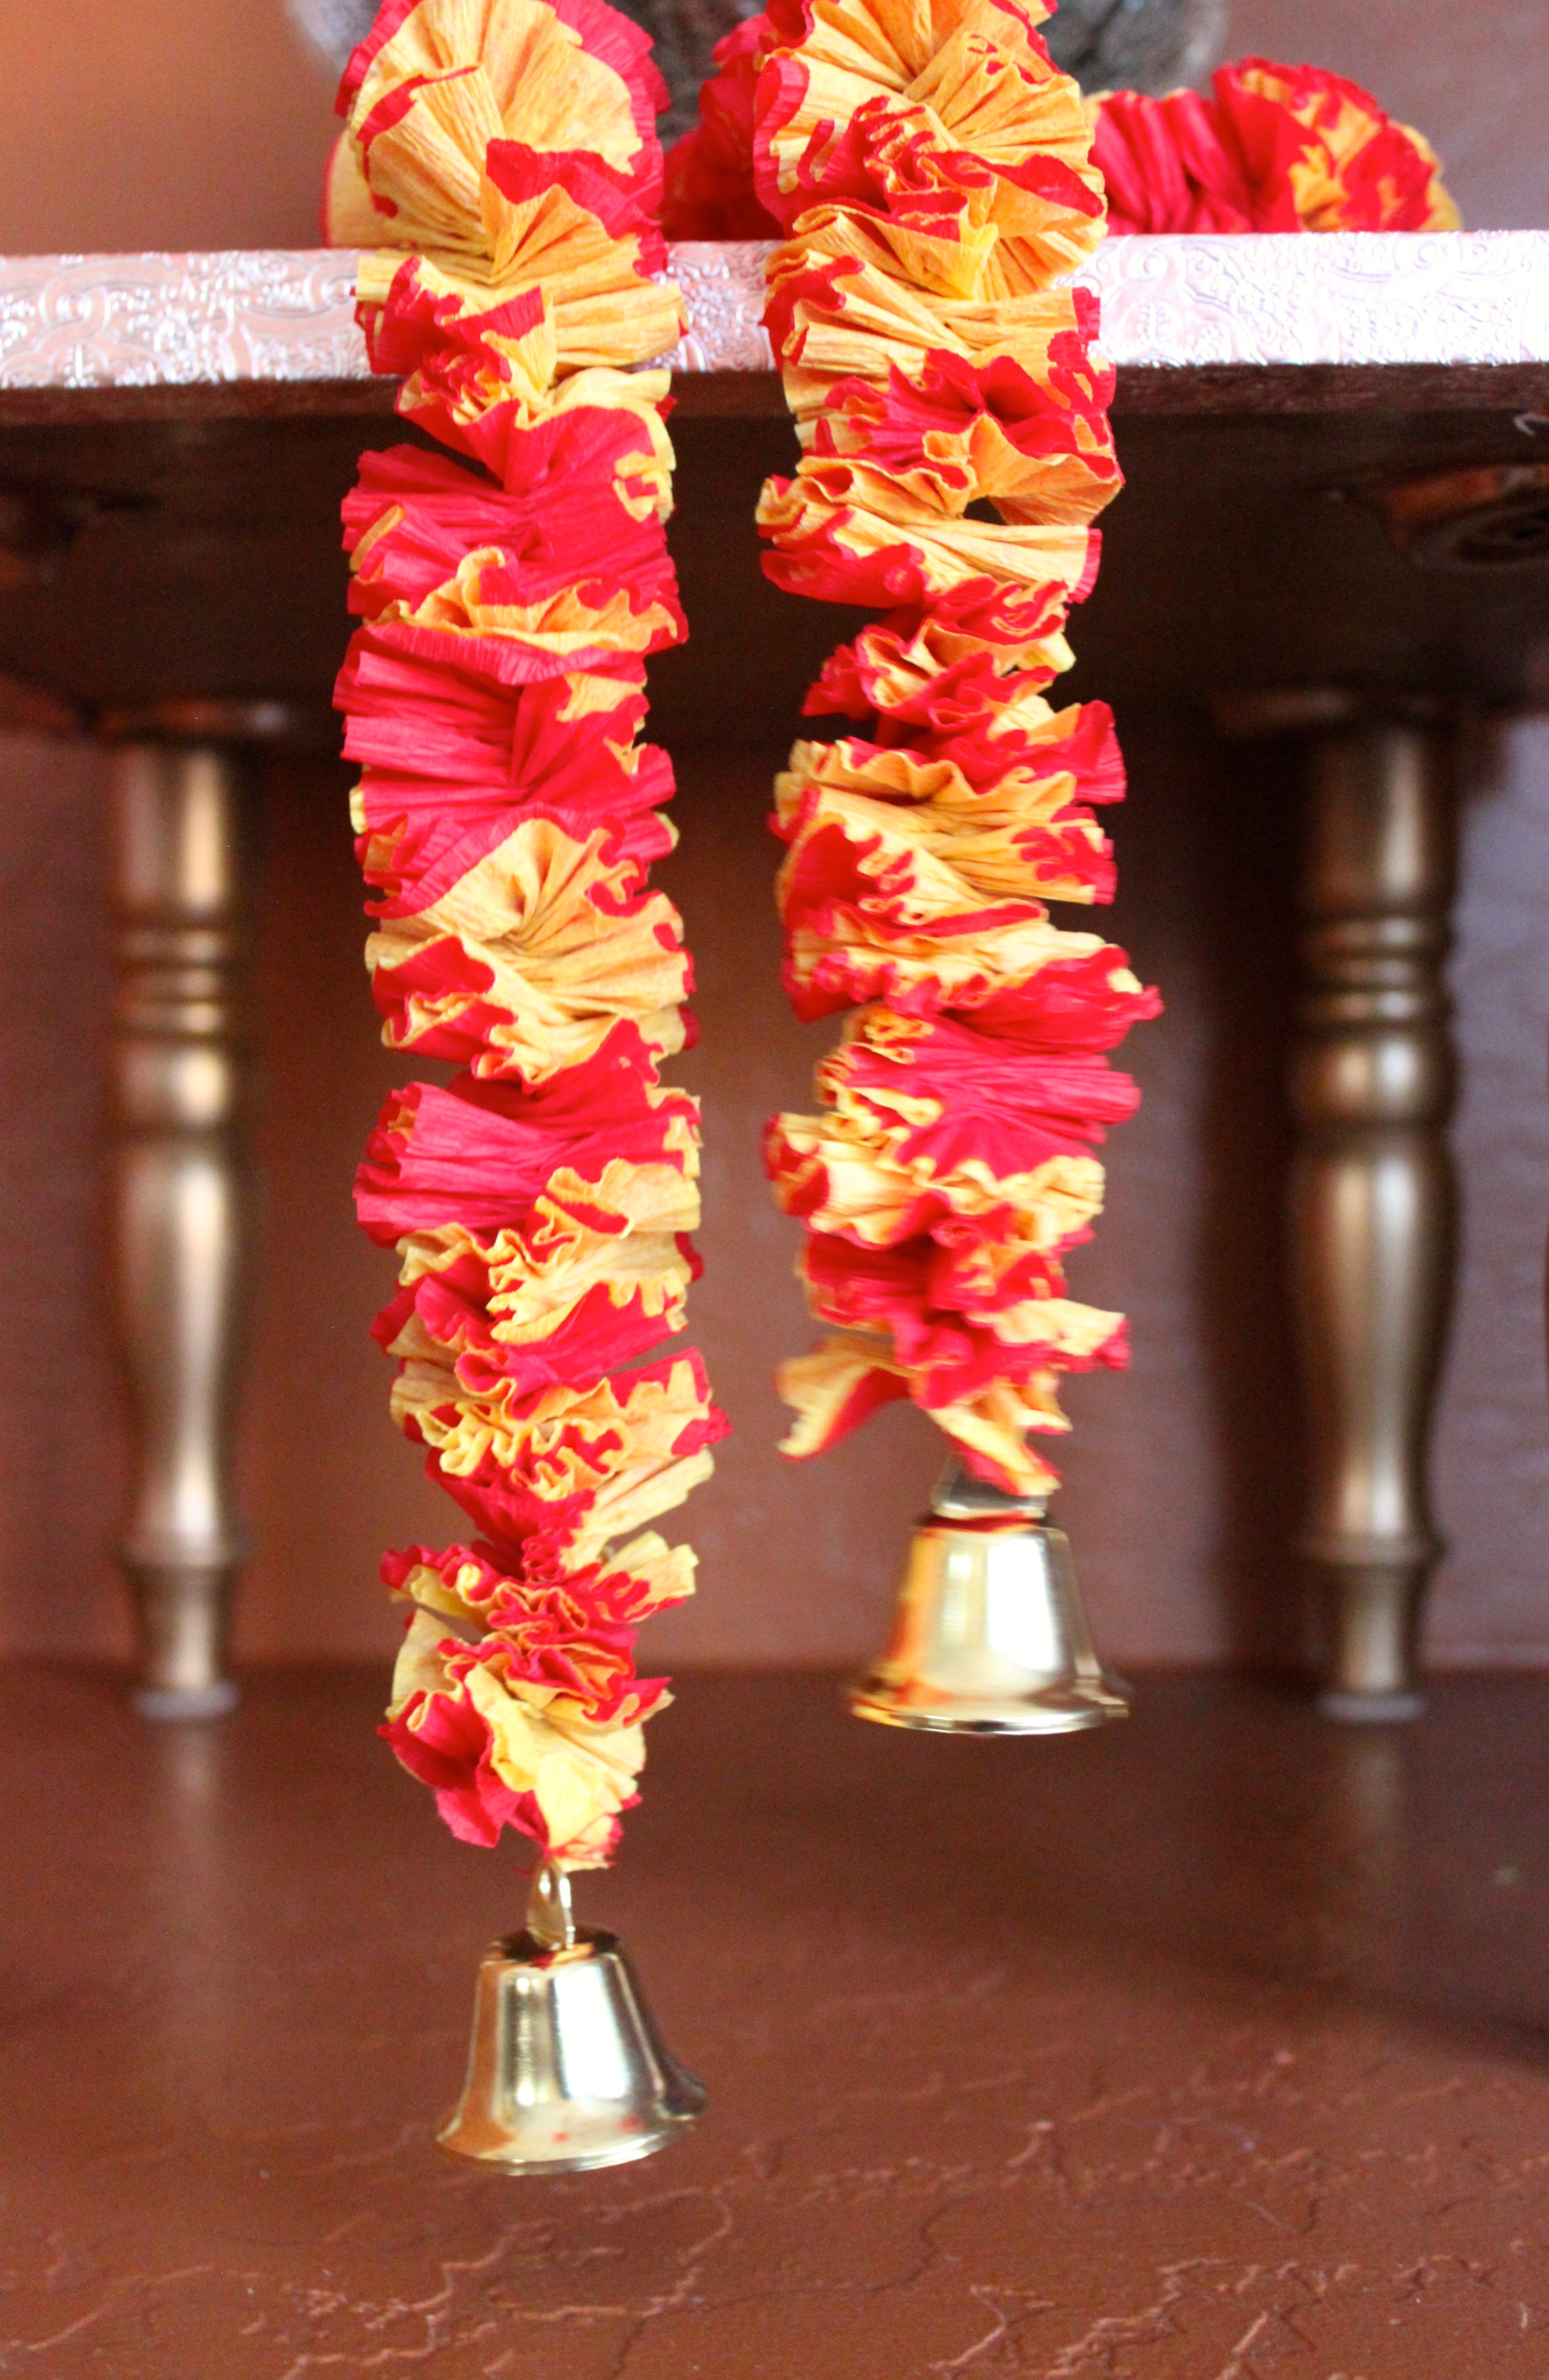 Diy diwali decorations creative me for Art and craft for diwali decoration